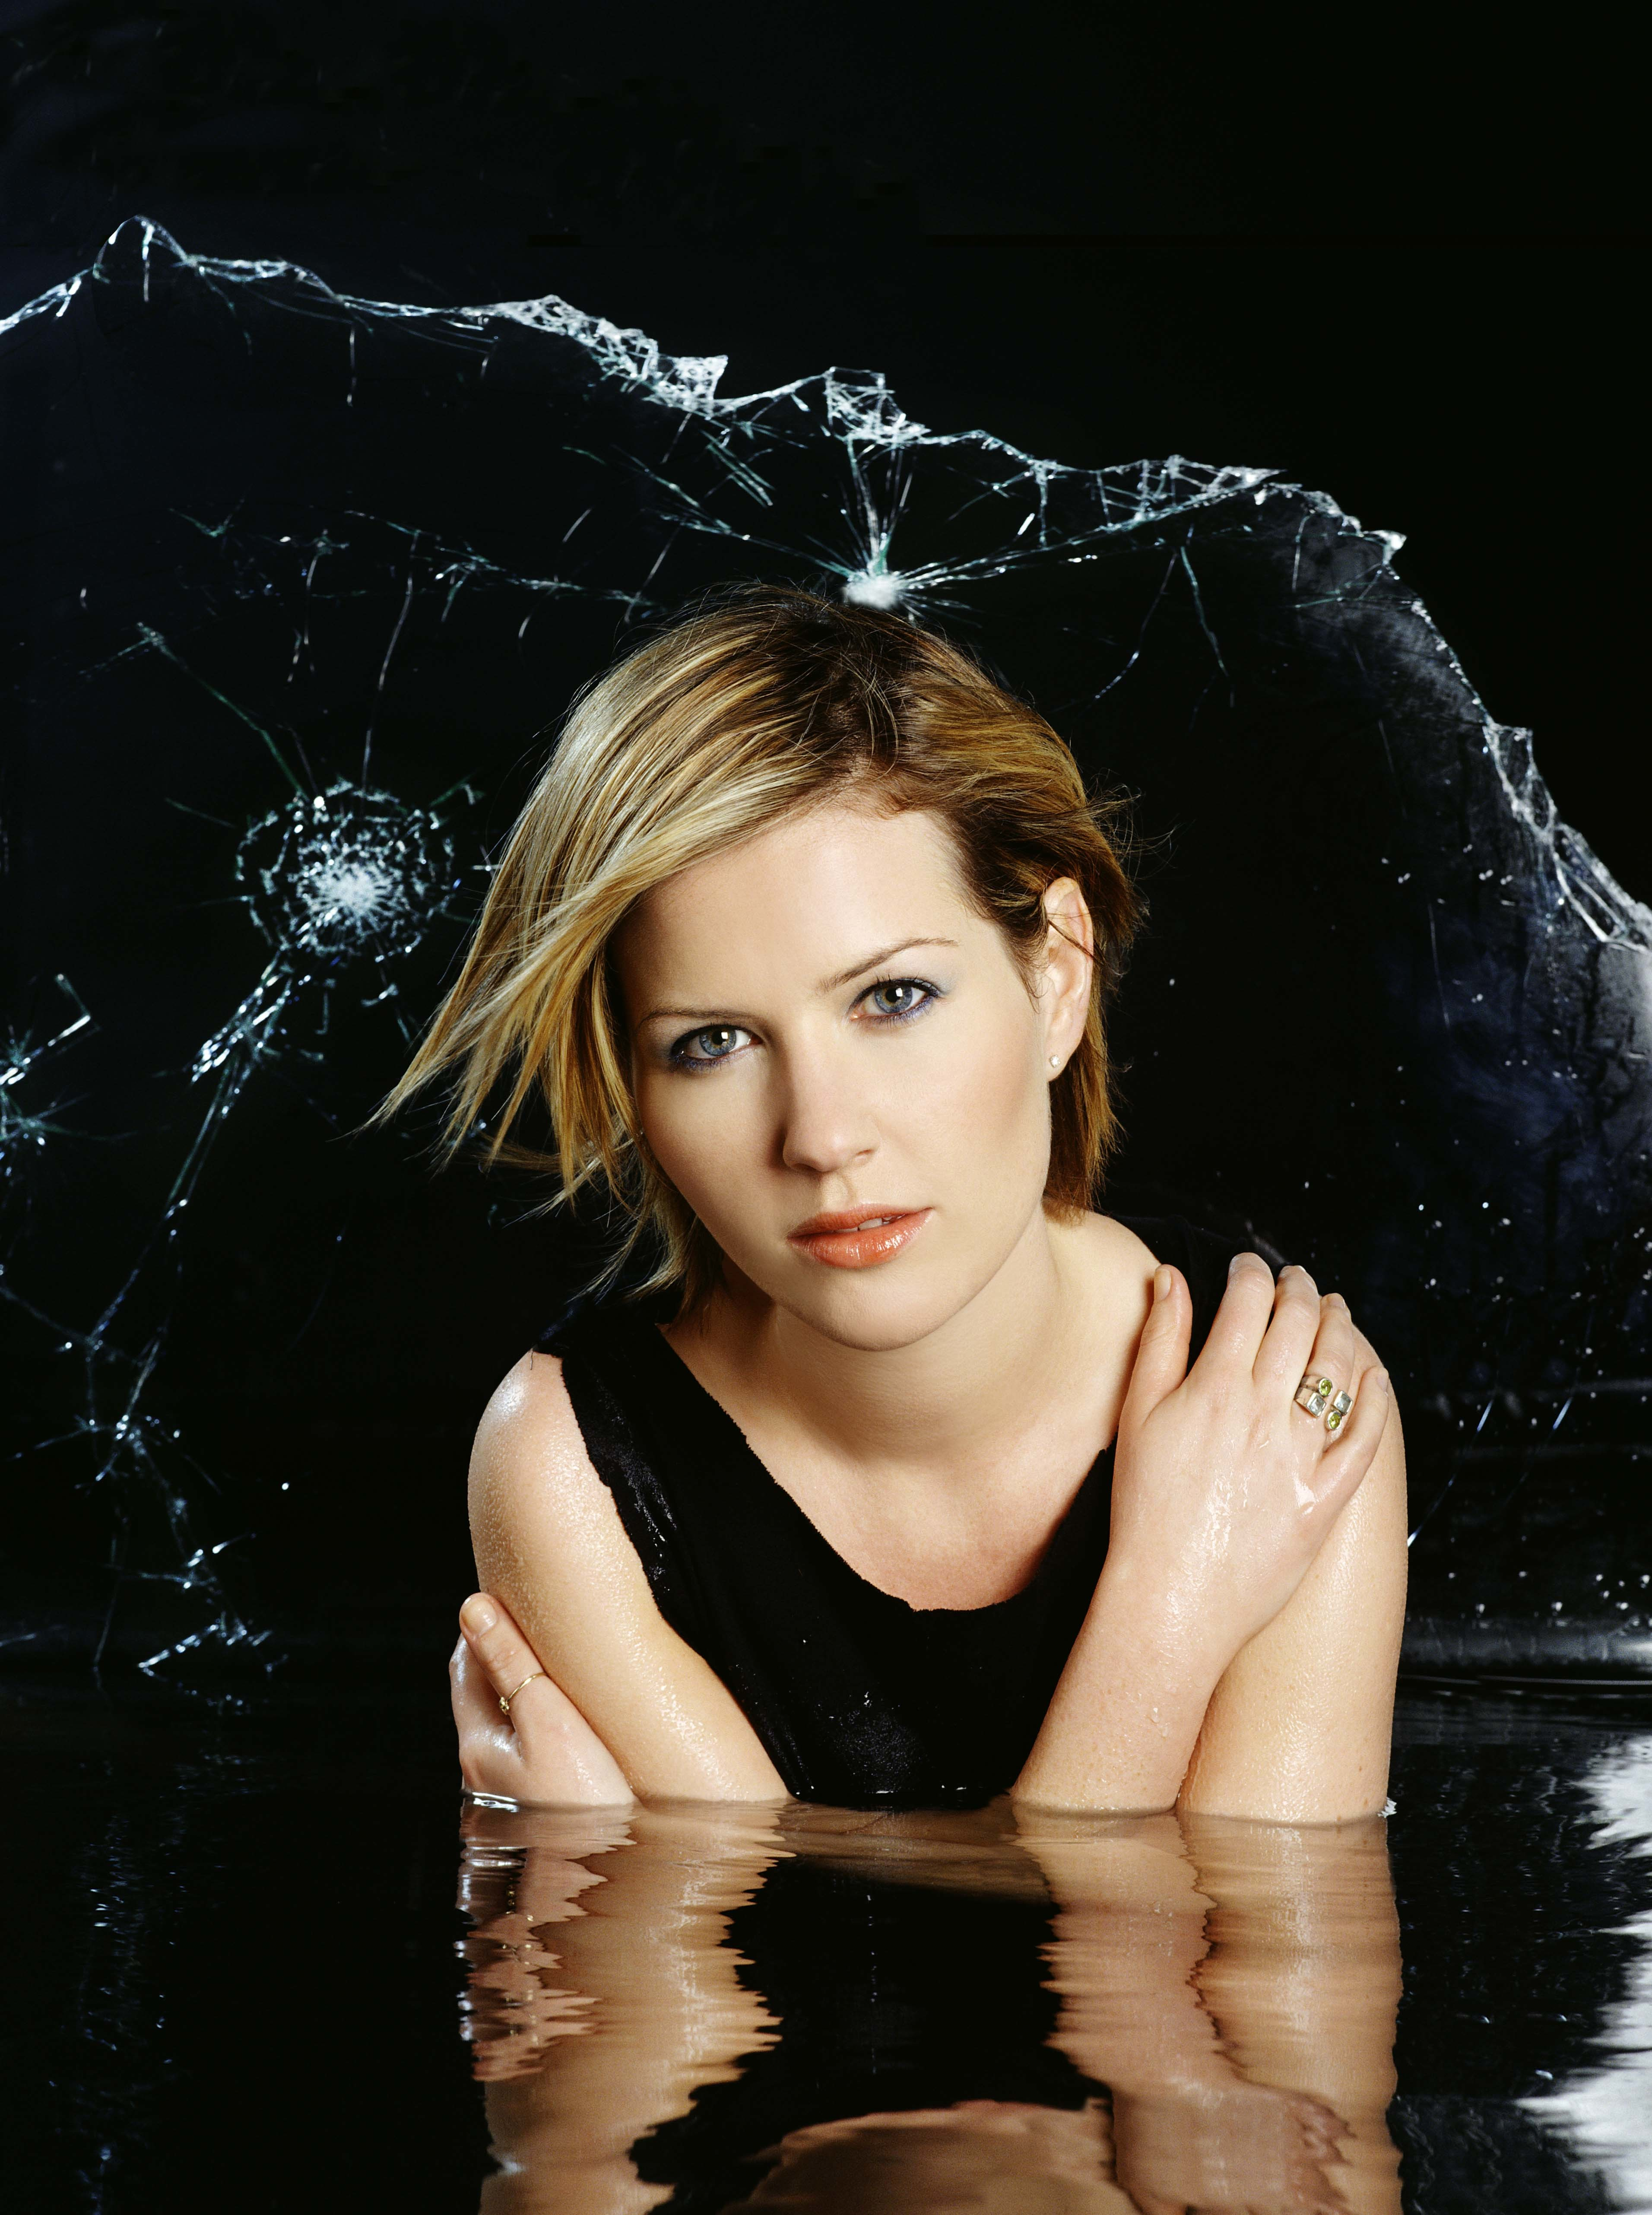 dido nice Celebrity HD Wallpaper